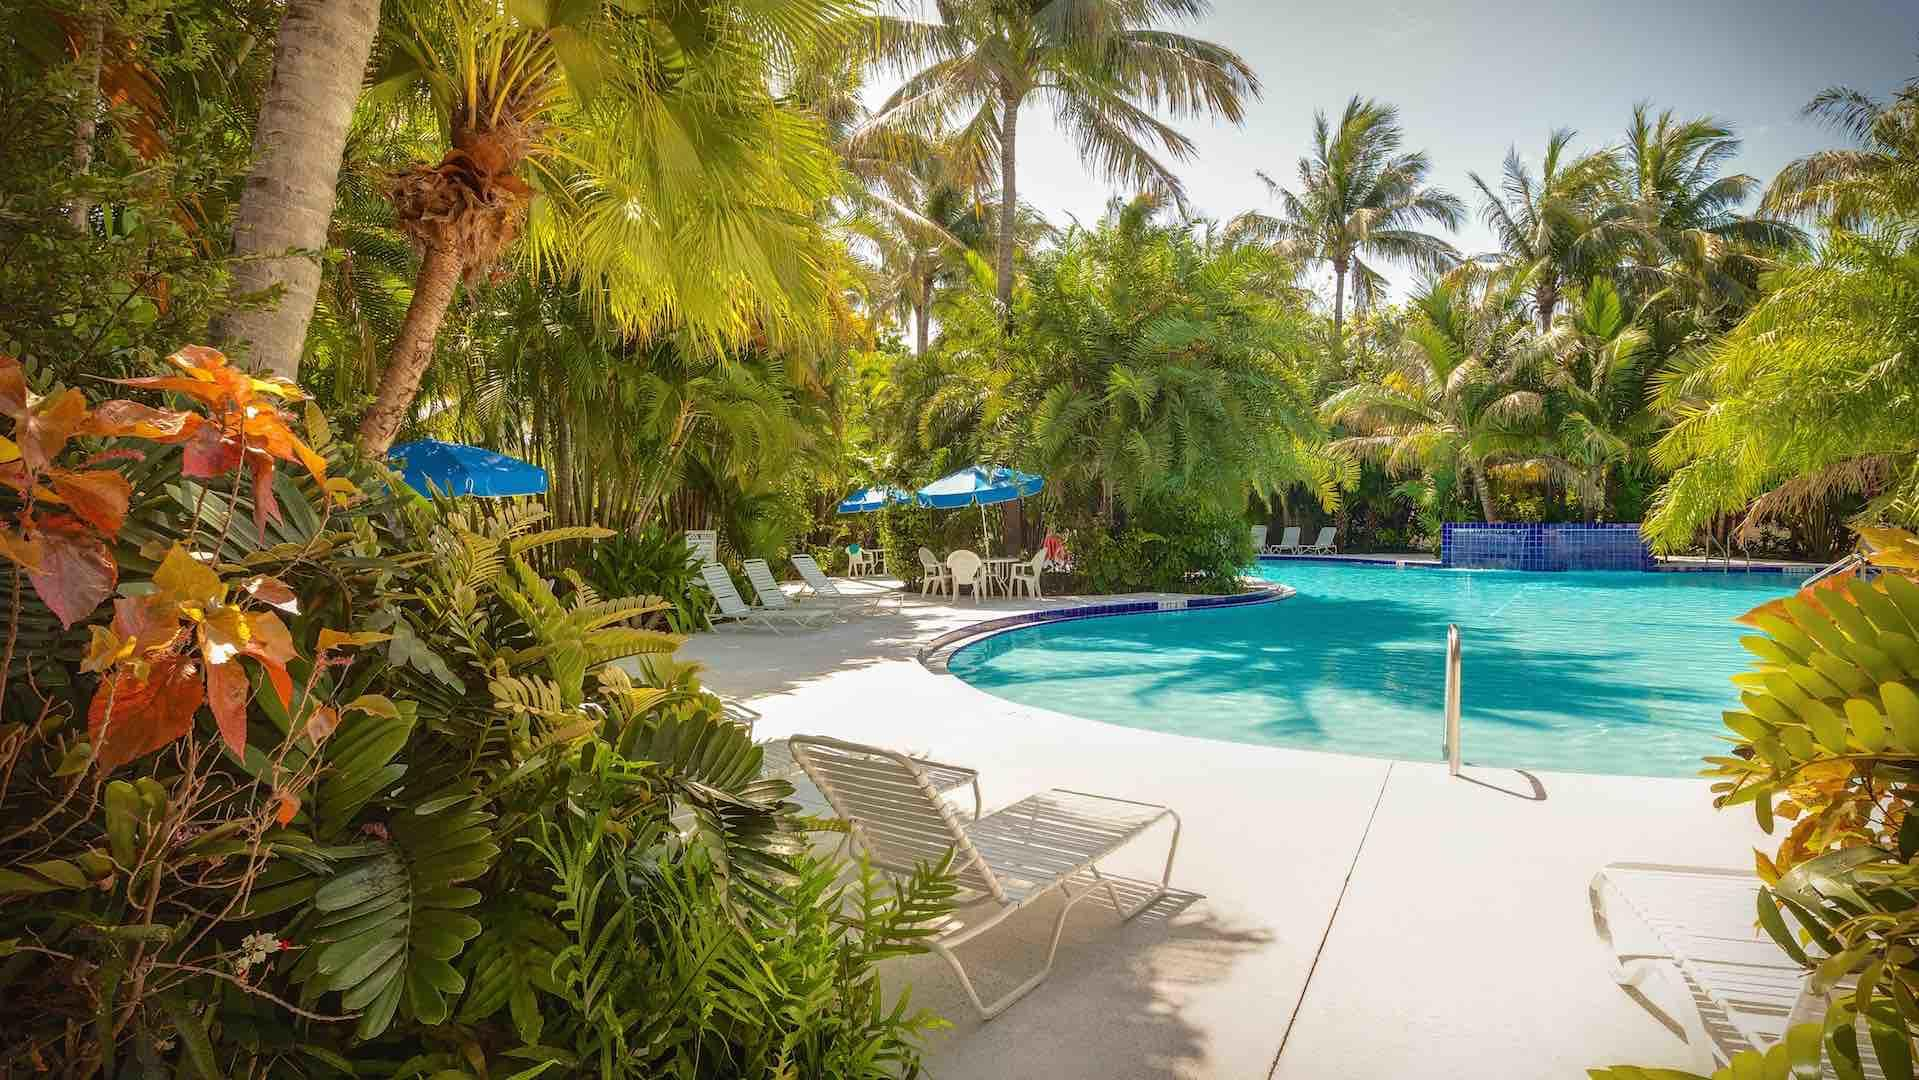 The Community Pool is just down the block, with nearby fitness room & restrooms...